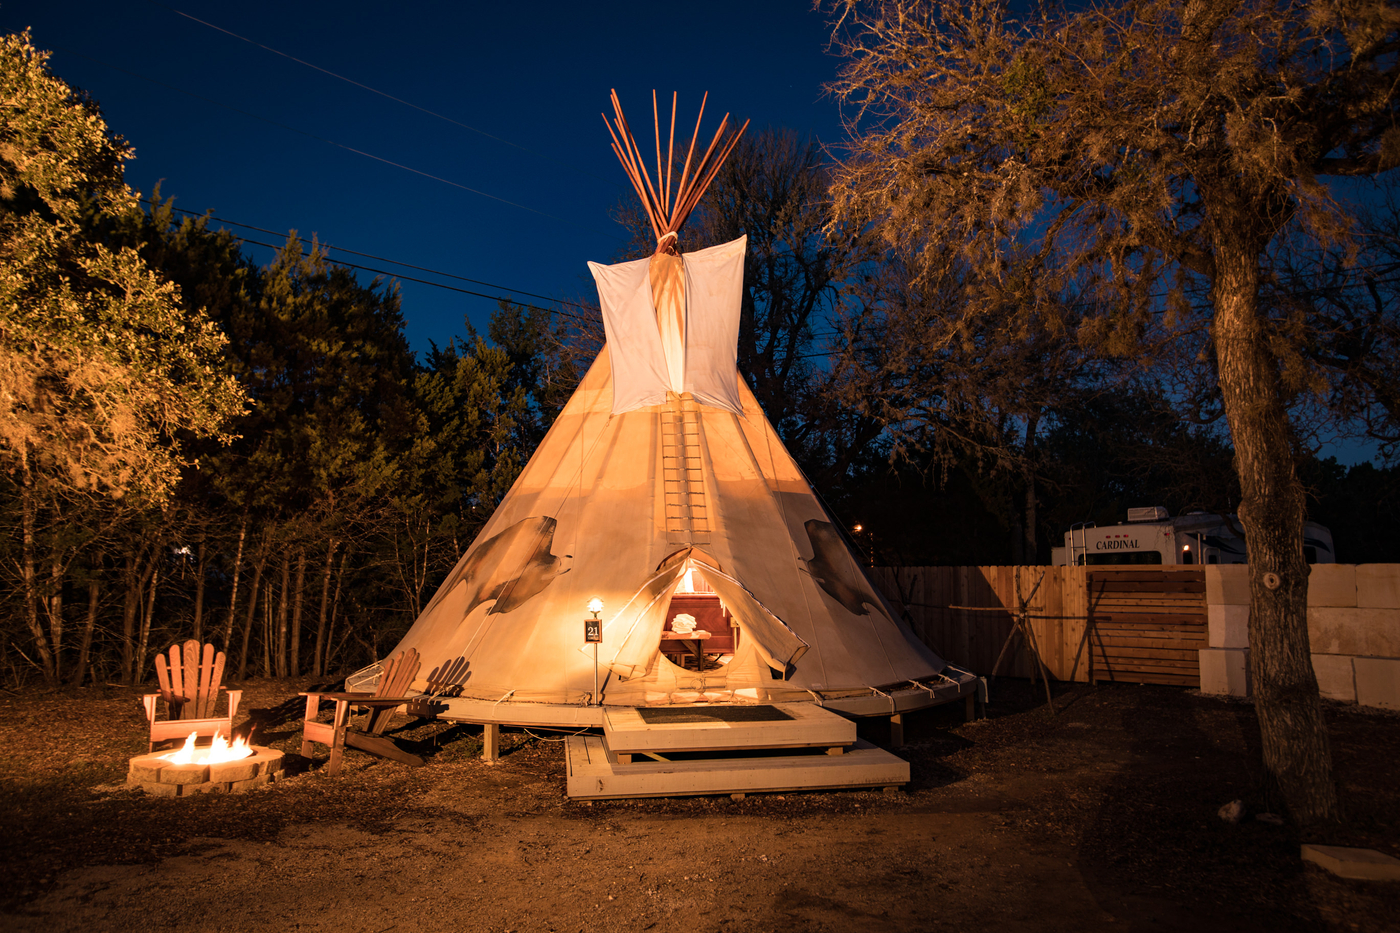 Cibilo Tipi during the evening